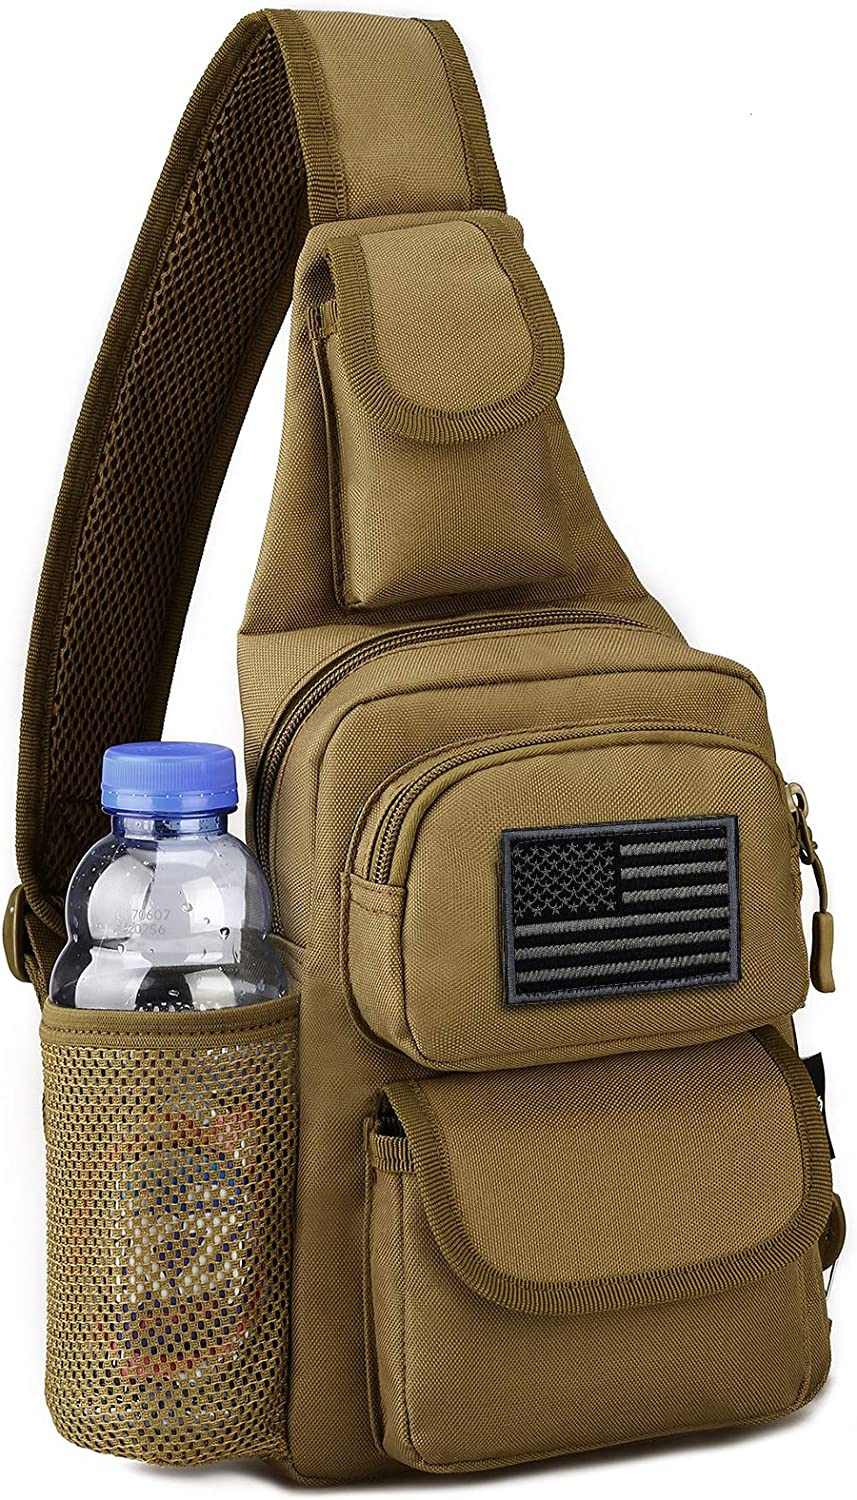 Protector Plus Tactical Sling Bag Military MOLLE Crossbody Pack (Patch Included)